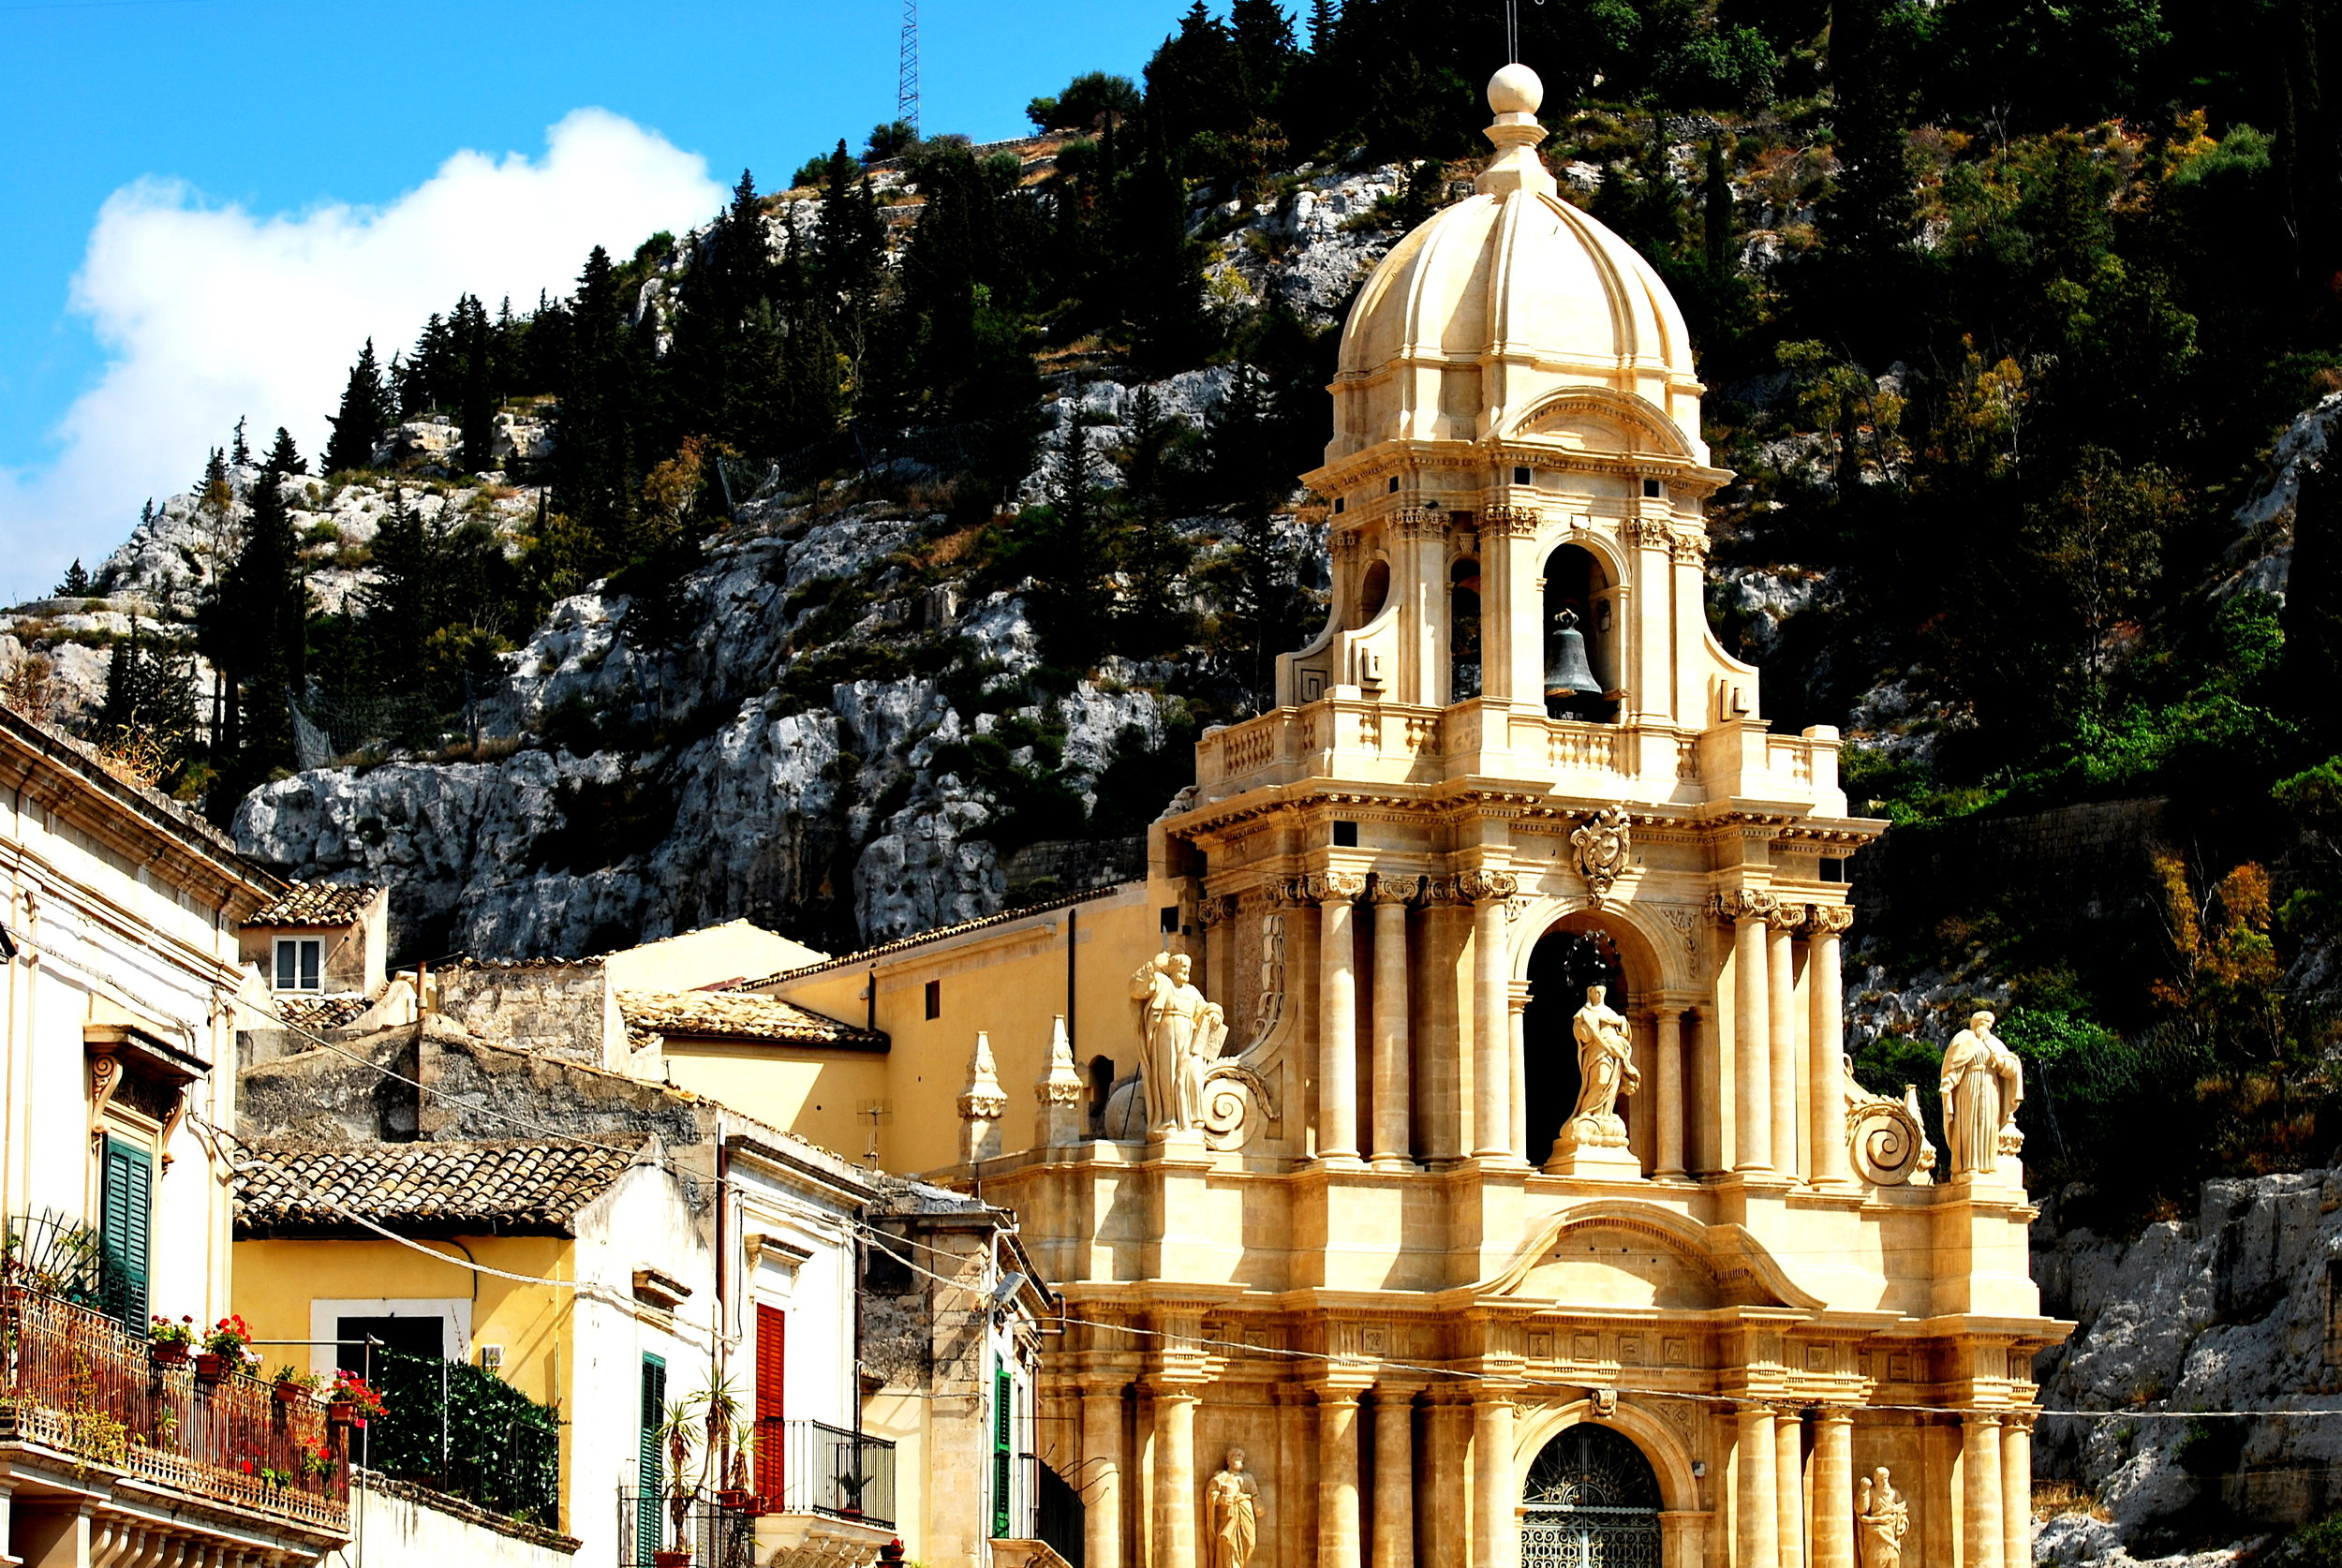 The baroque town of Scicli in Sicily